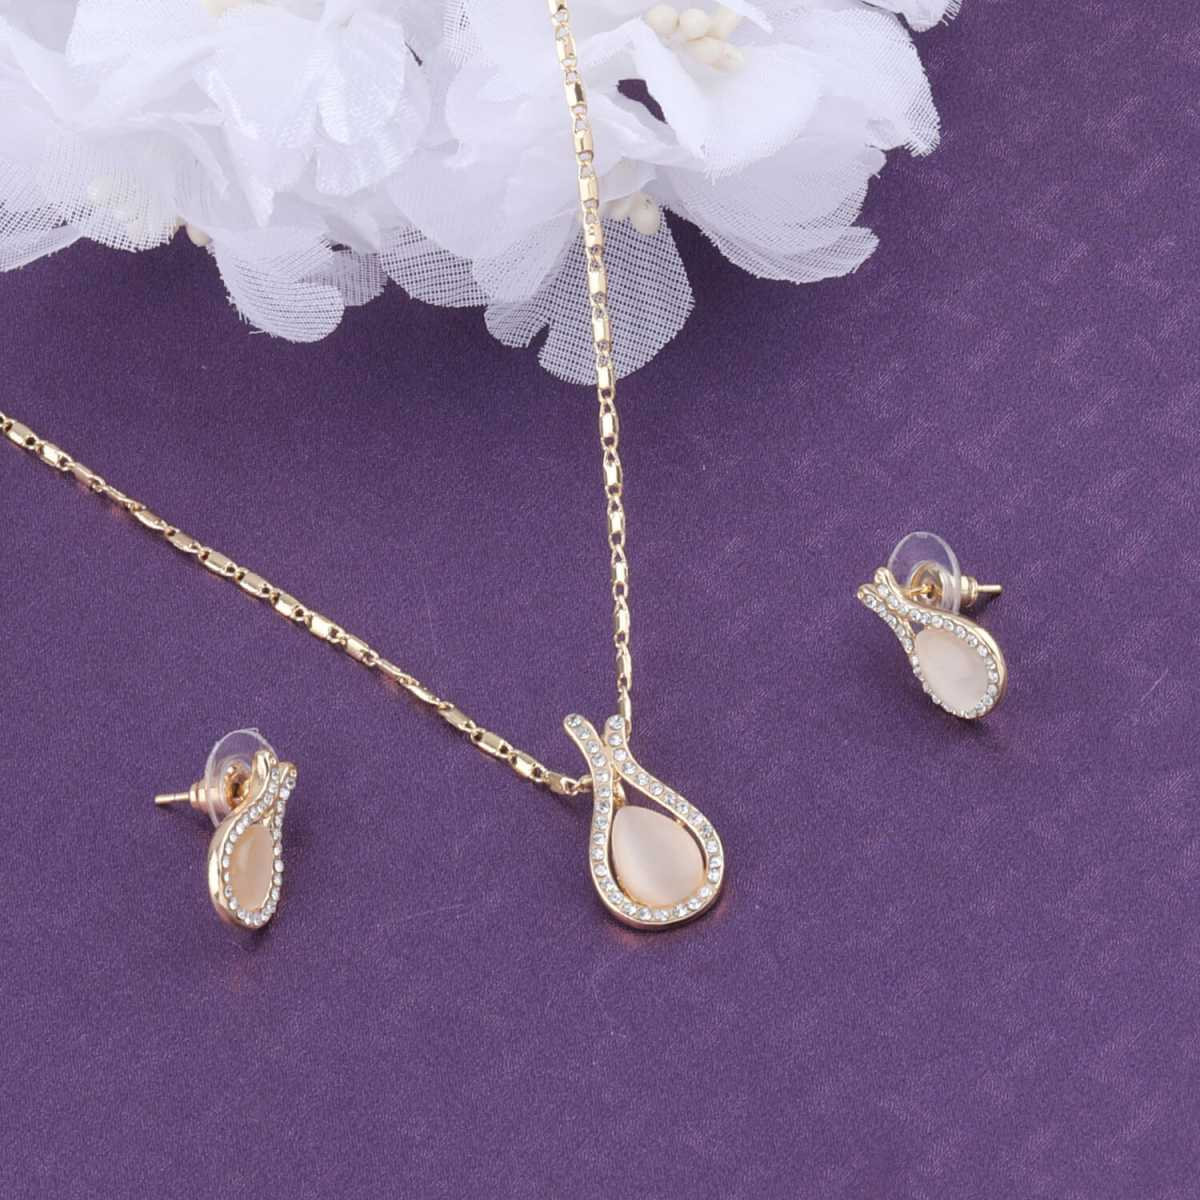 SILVER SHINE Stylish Delicate  Pendant Set For Women Girl